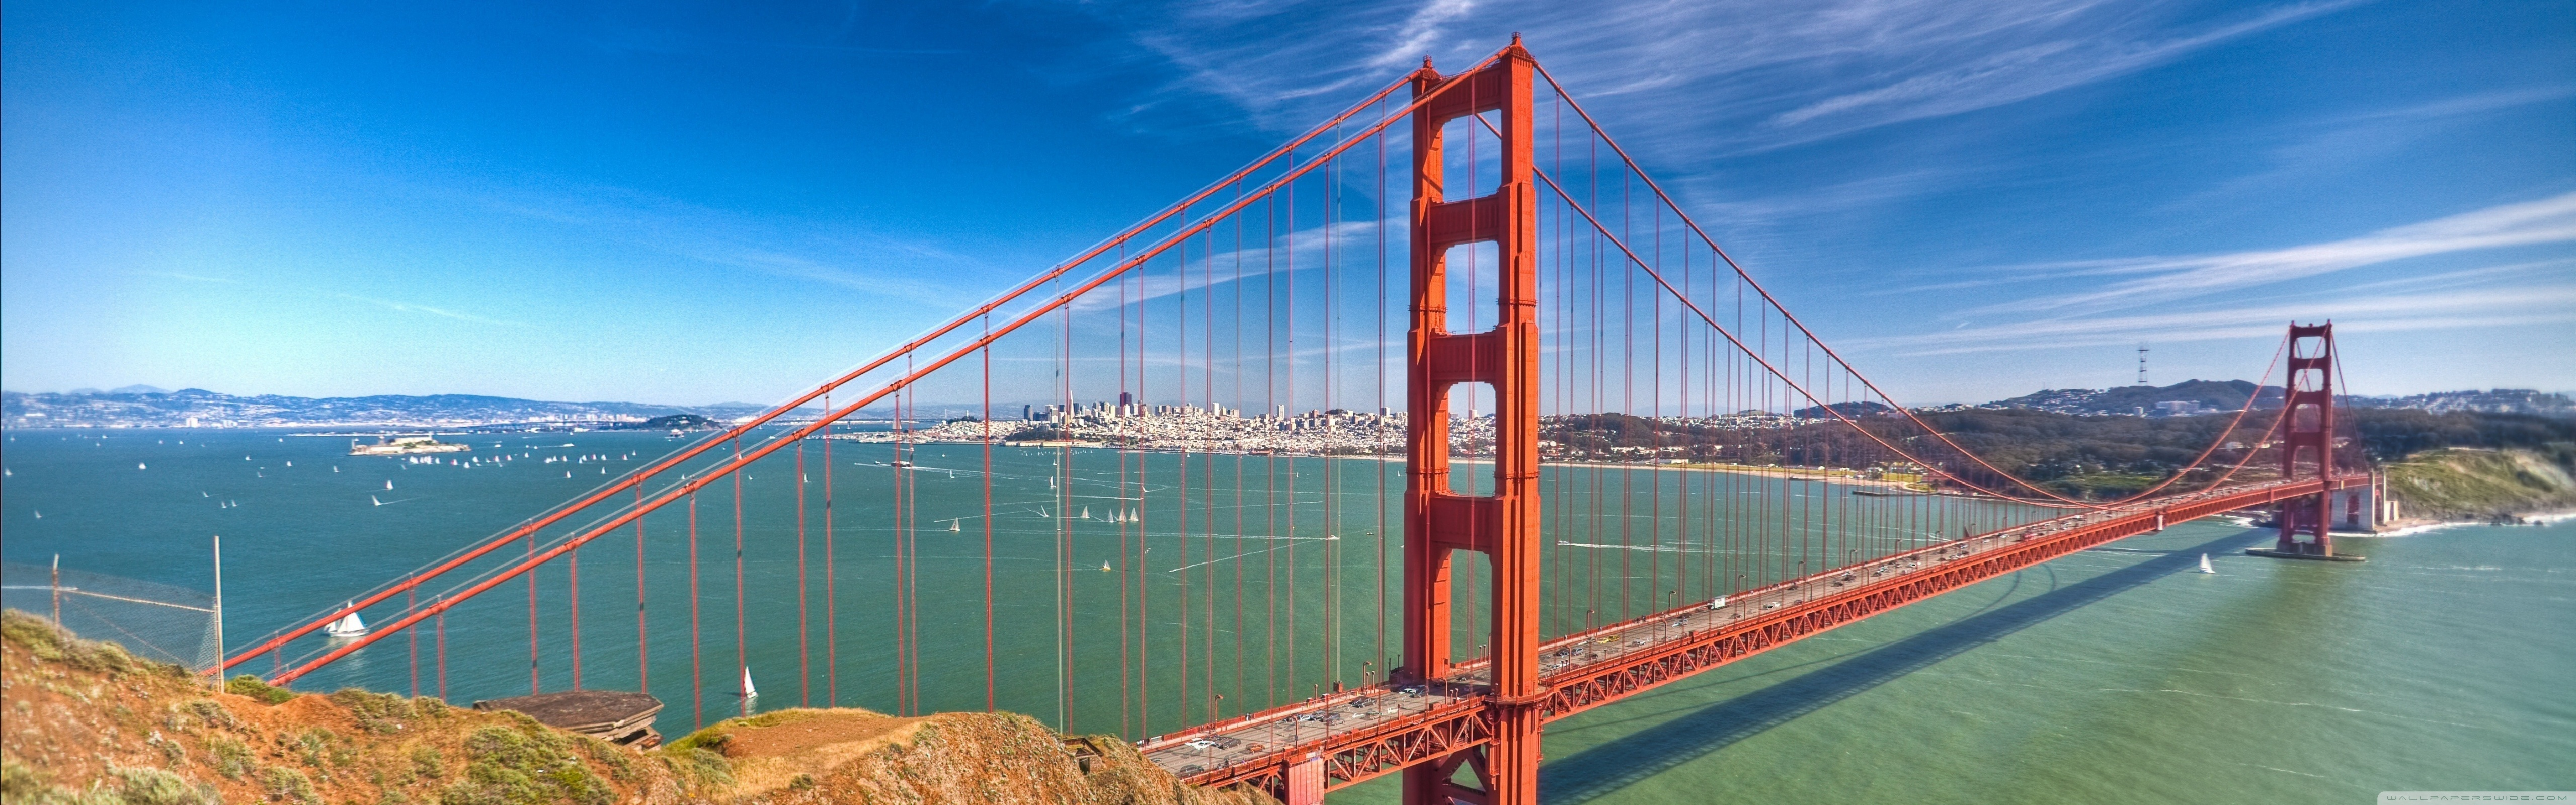 Golden Gate By Day 4K HD Desktop Wallpaper for 4K Ultra HD TV 5120x1600